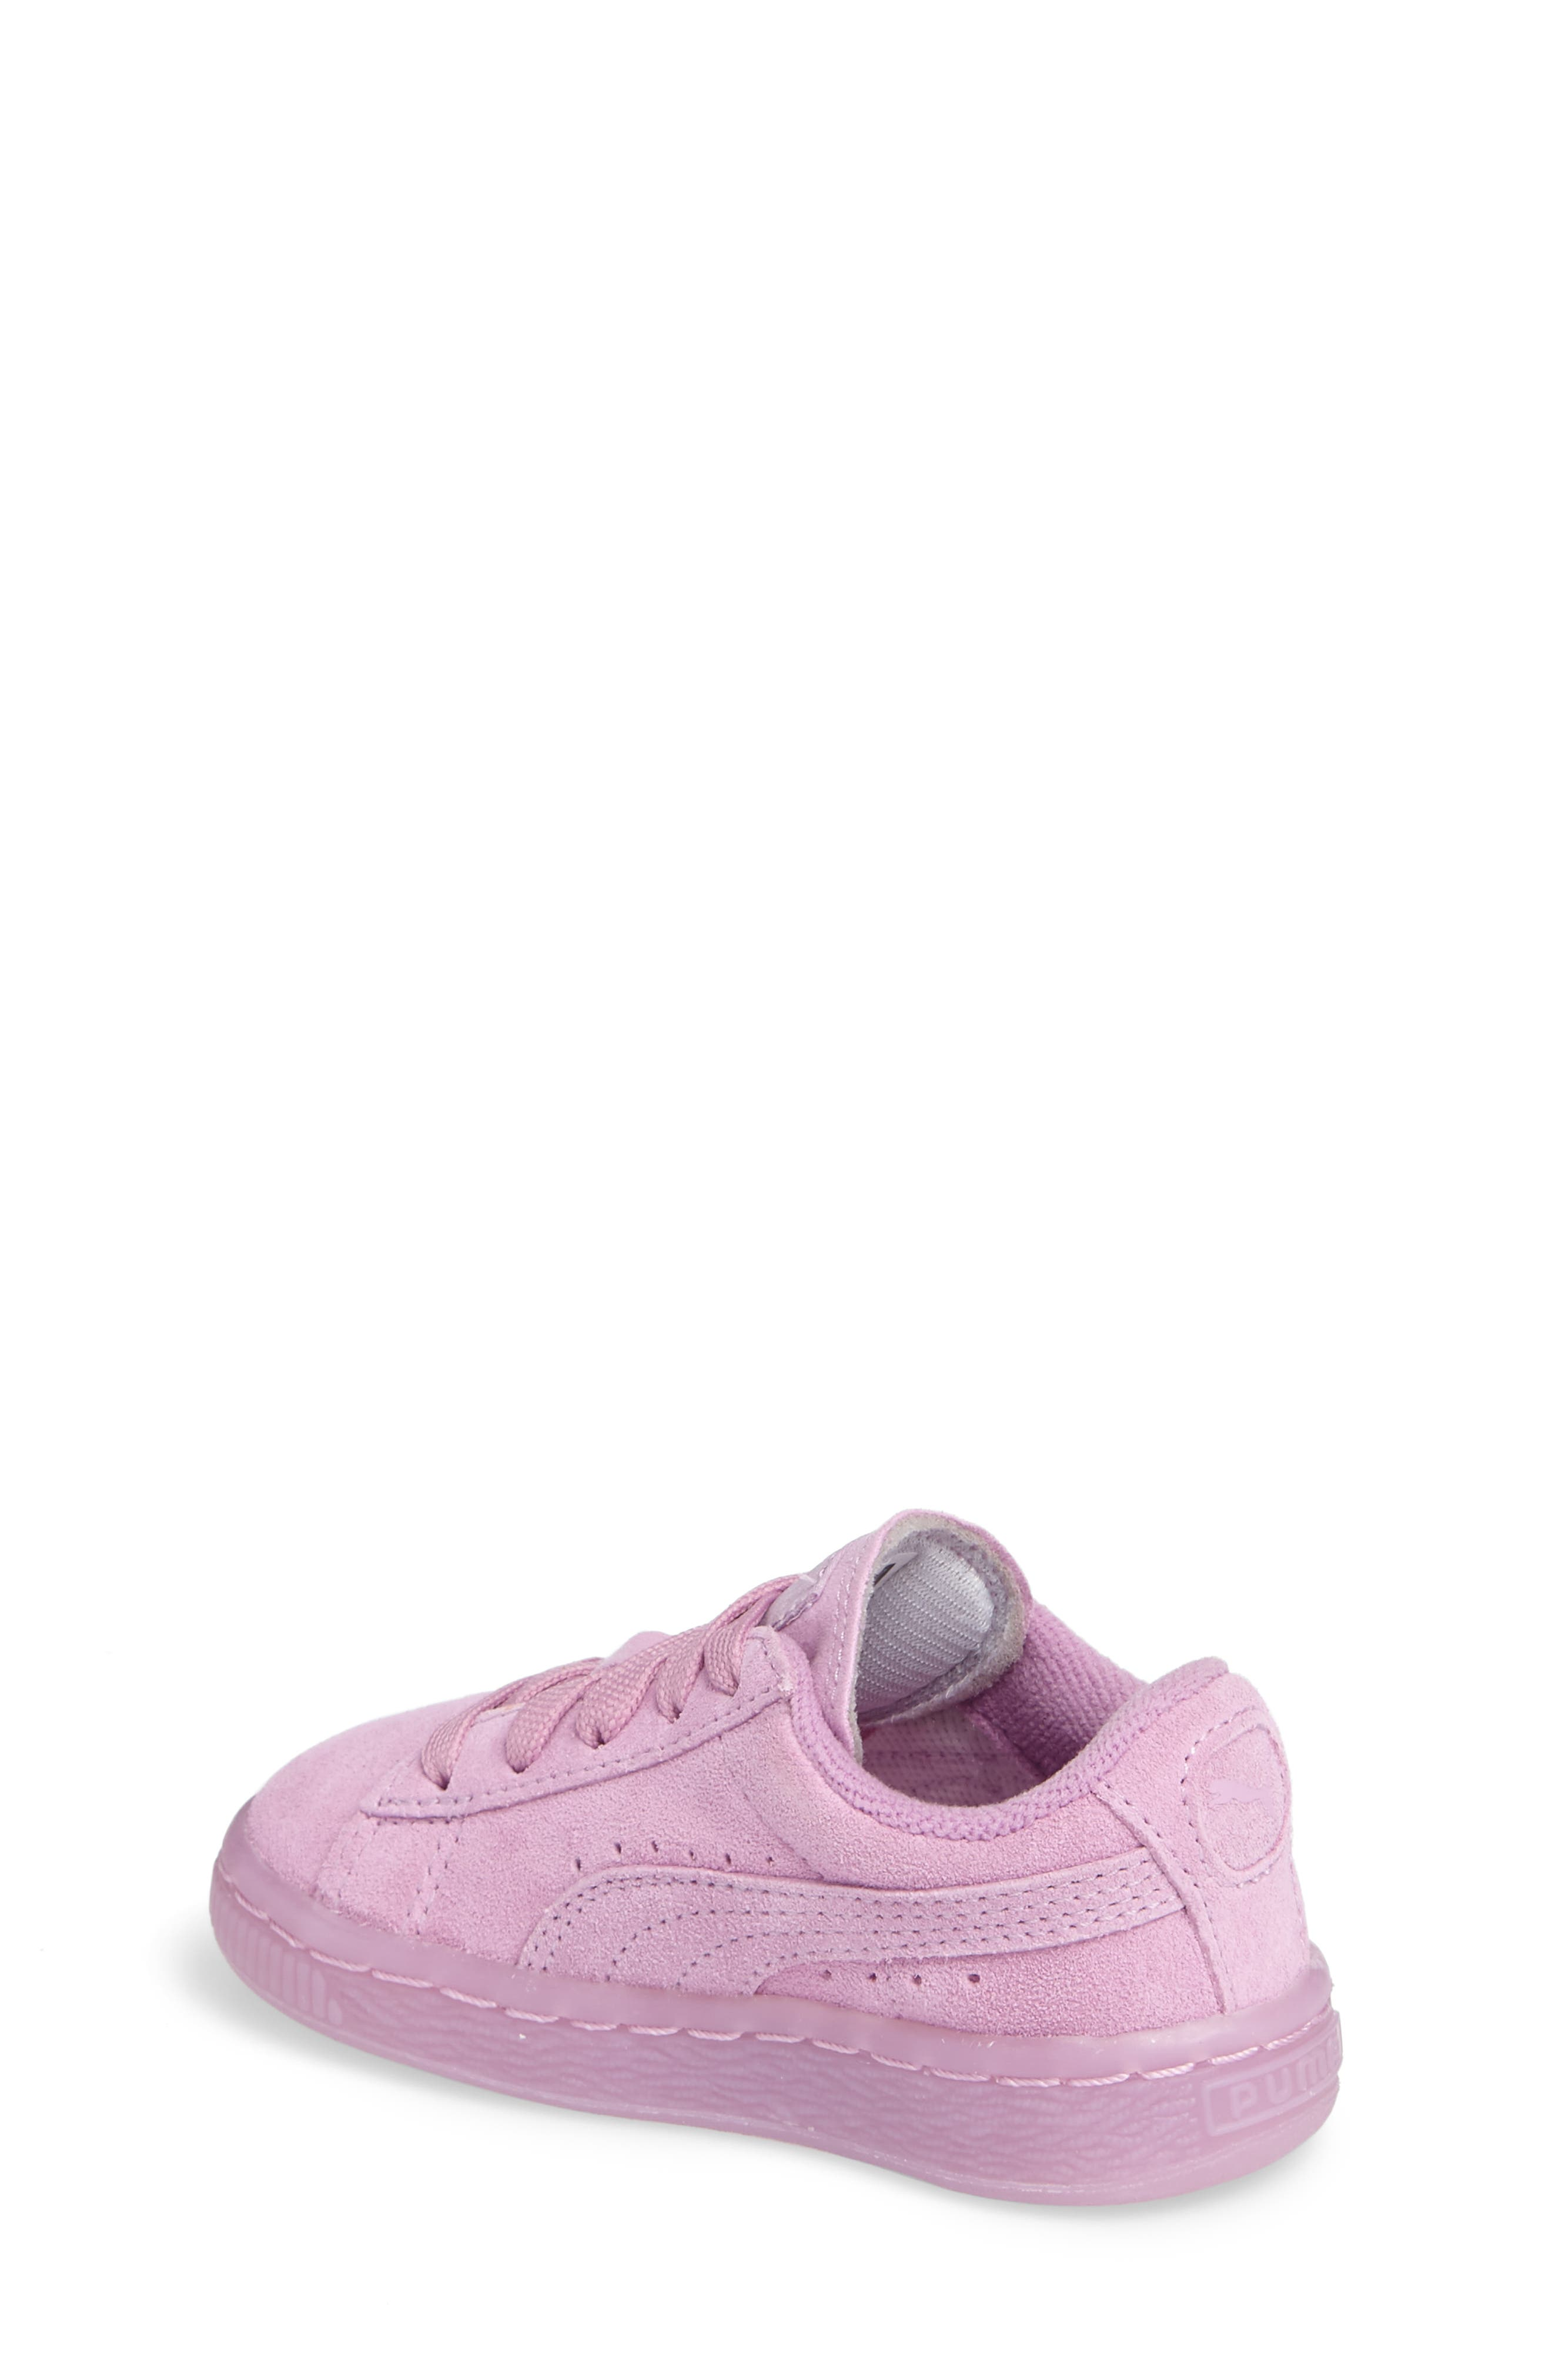 Suede Iced Sneaker,                             Alternate thumbnail 2, color,                             500